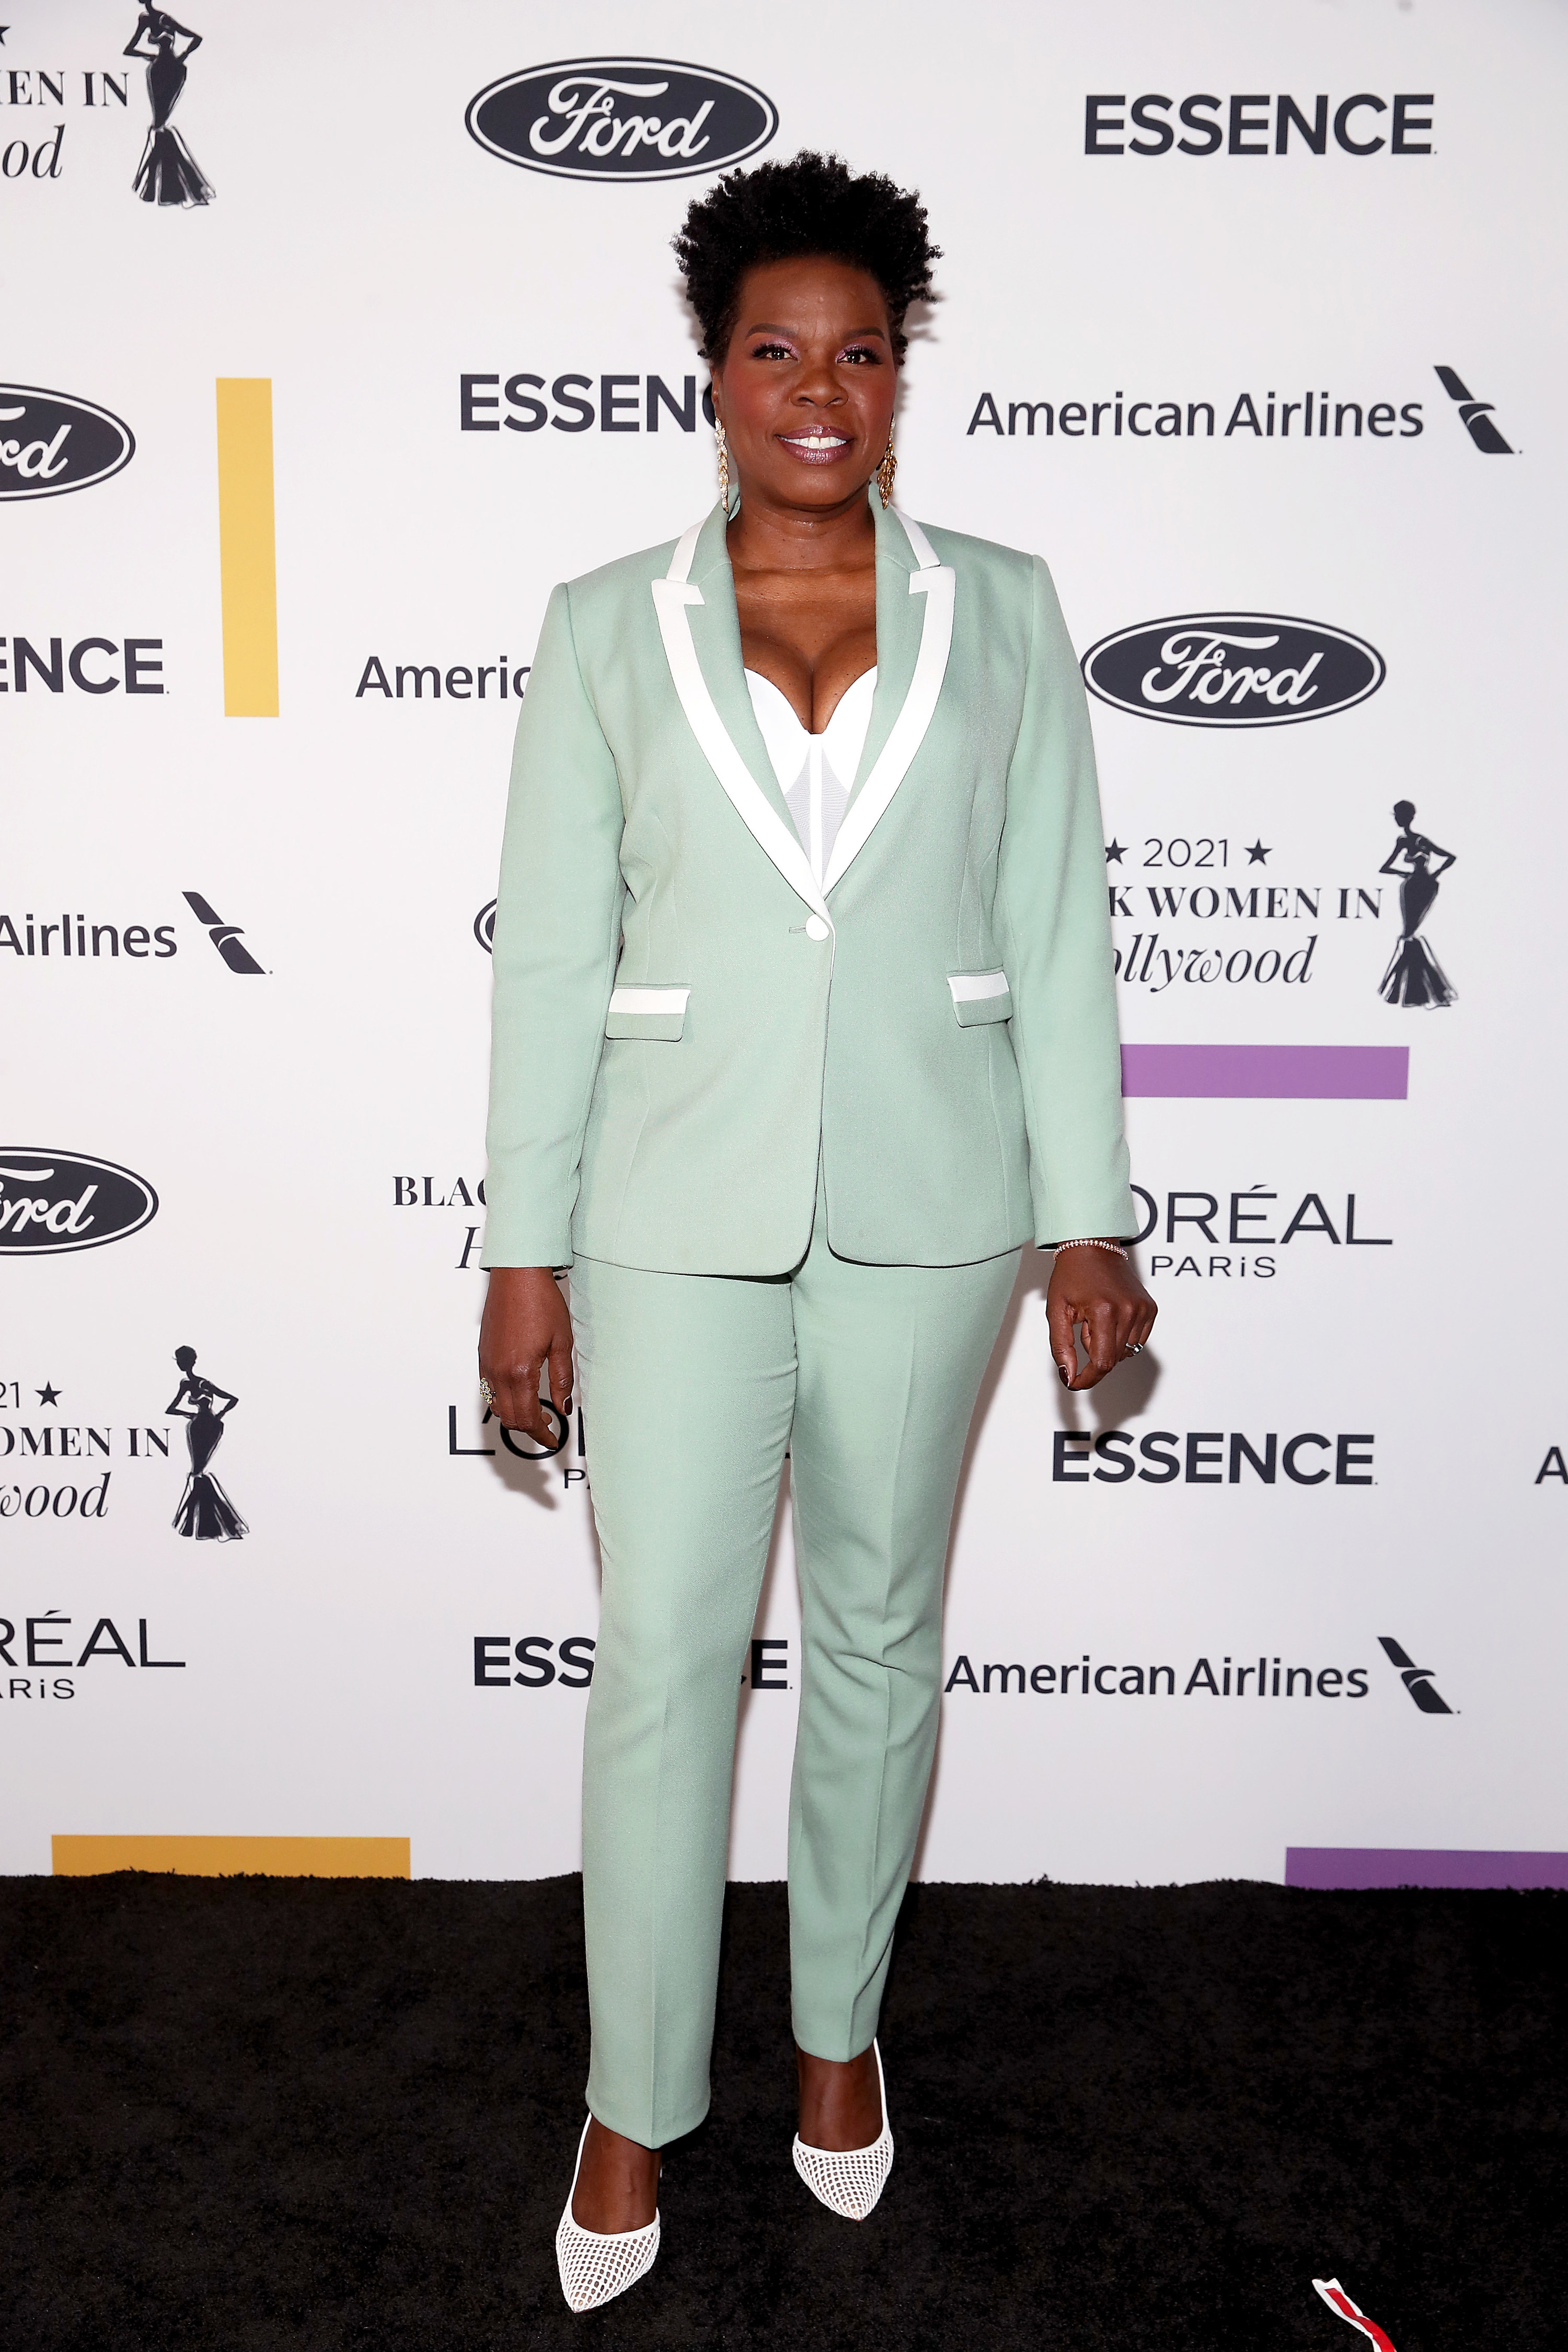 Leslie wears a Tiffany blue suit with white piping details